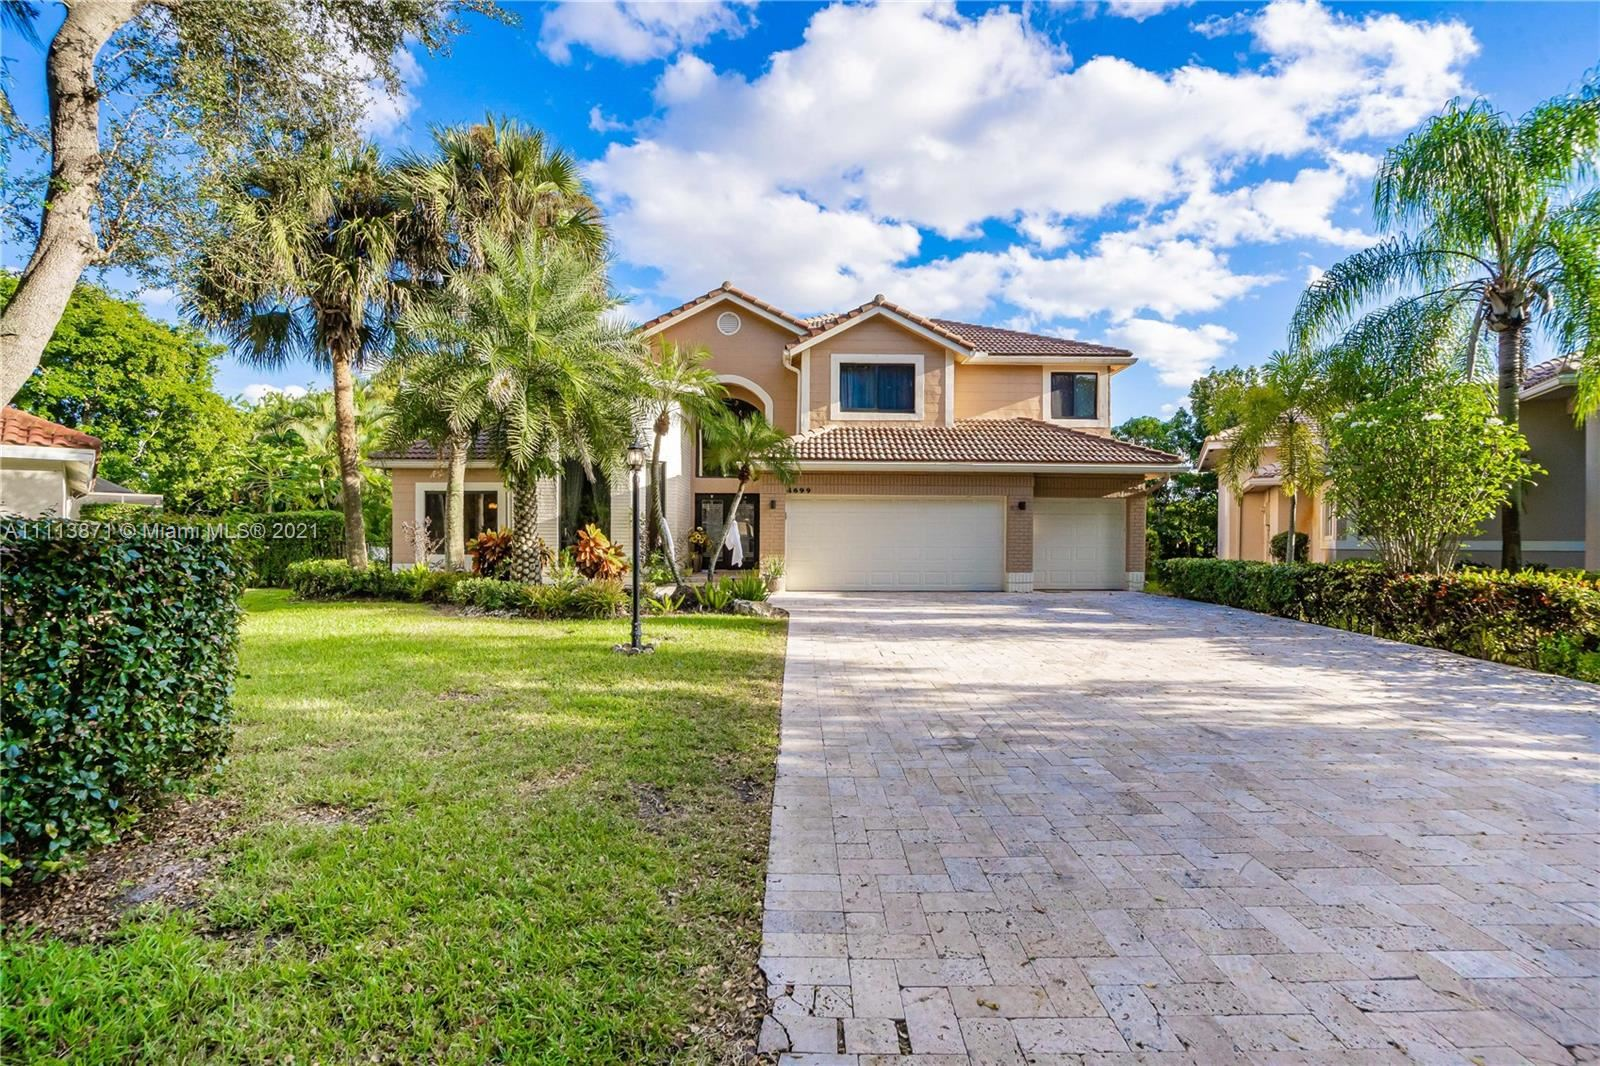 4699 Rothschild Dr, Coral Springs, FL 33067 - #: A11113871